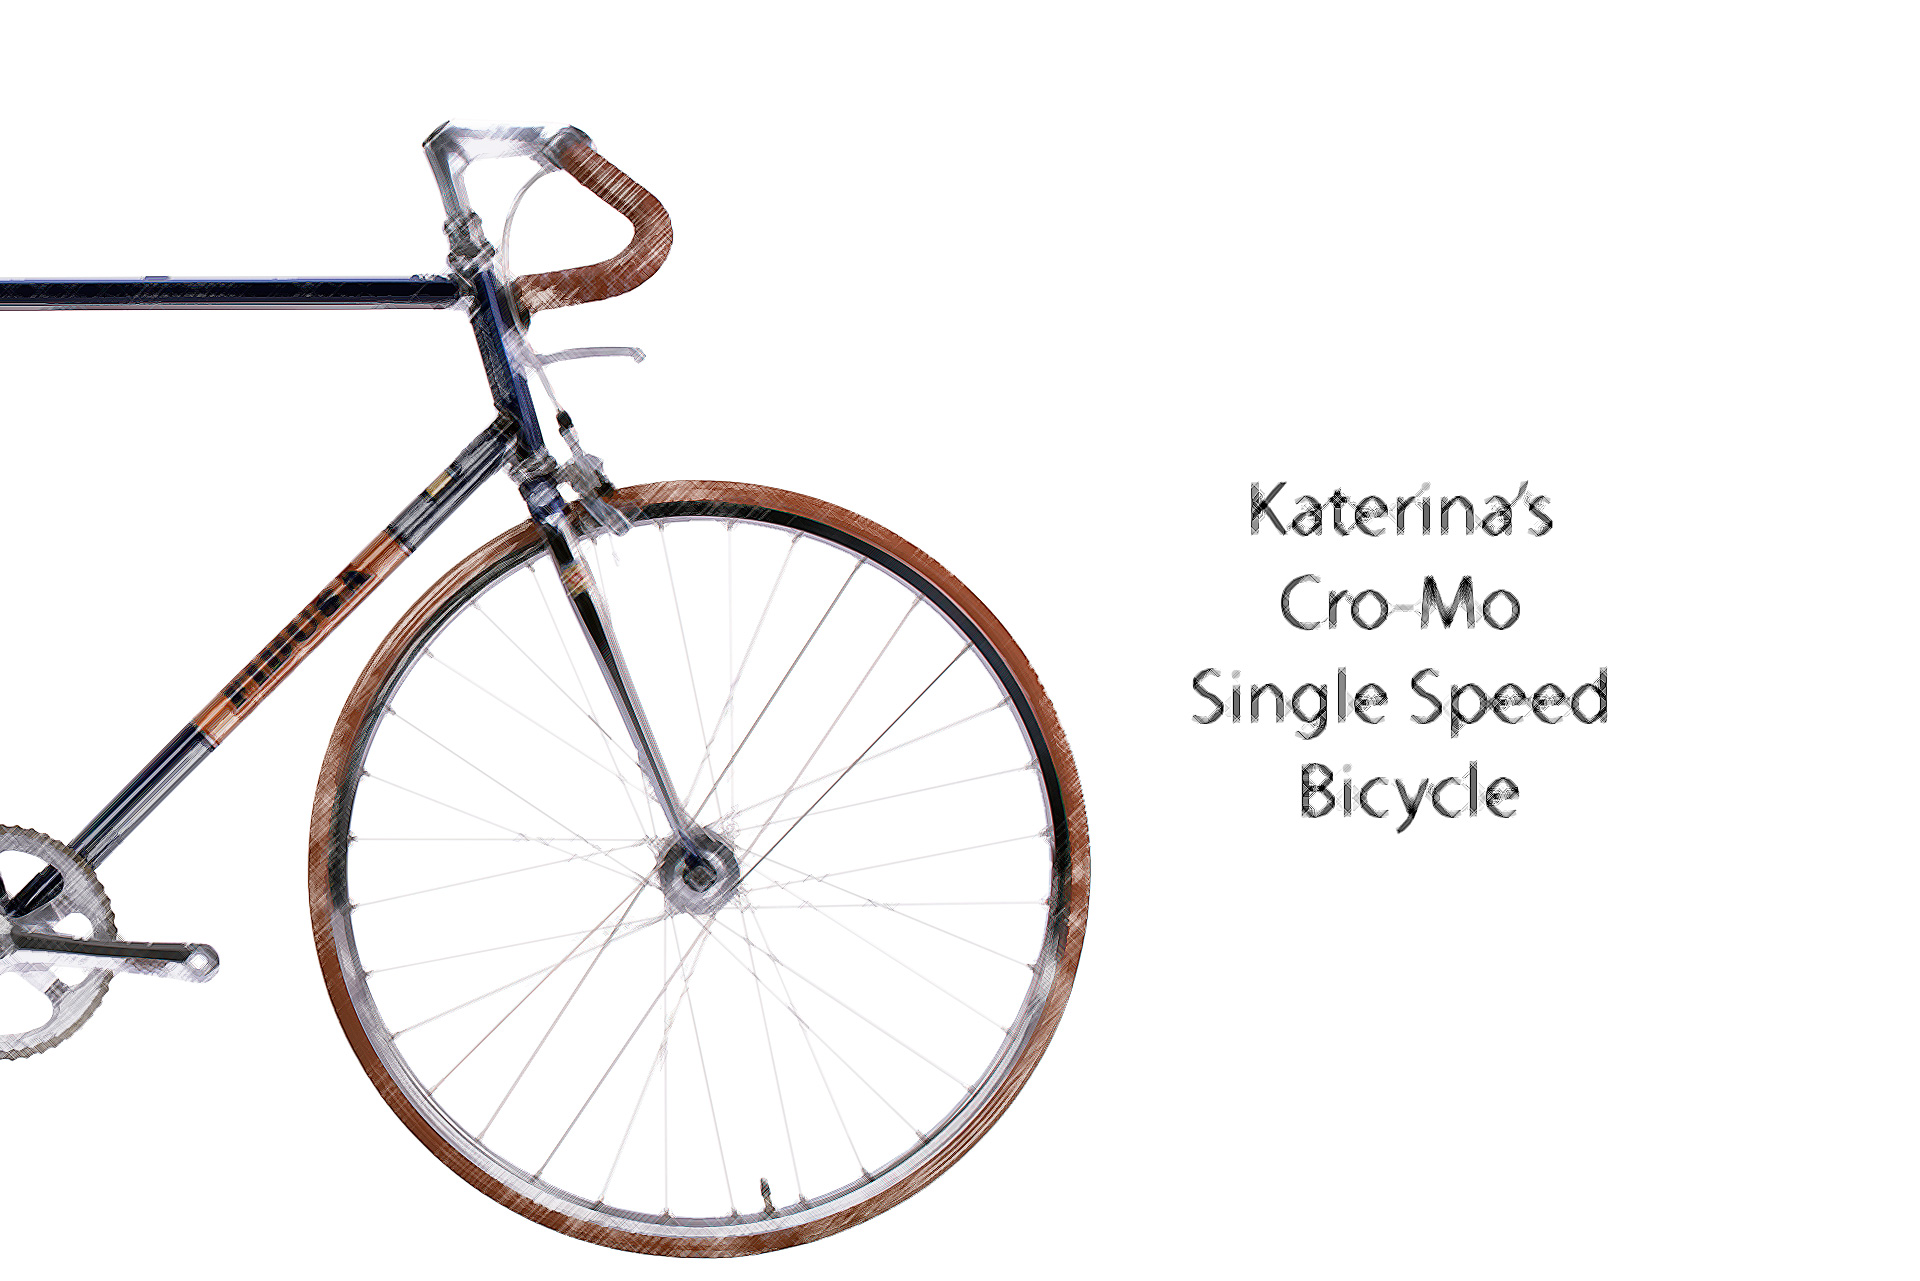 cro-mo-single-speed-bicycle5 Katerina's Cro-Mo Single Speed Bicycle